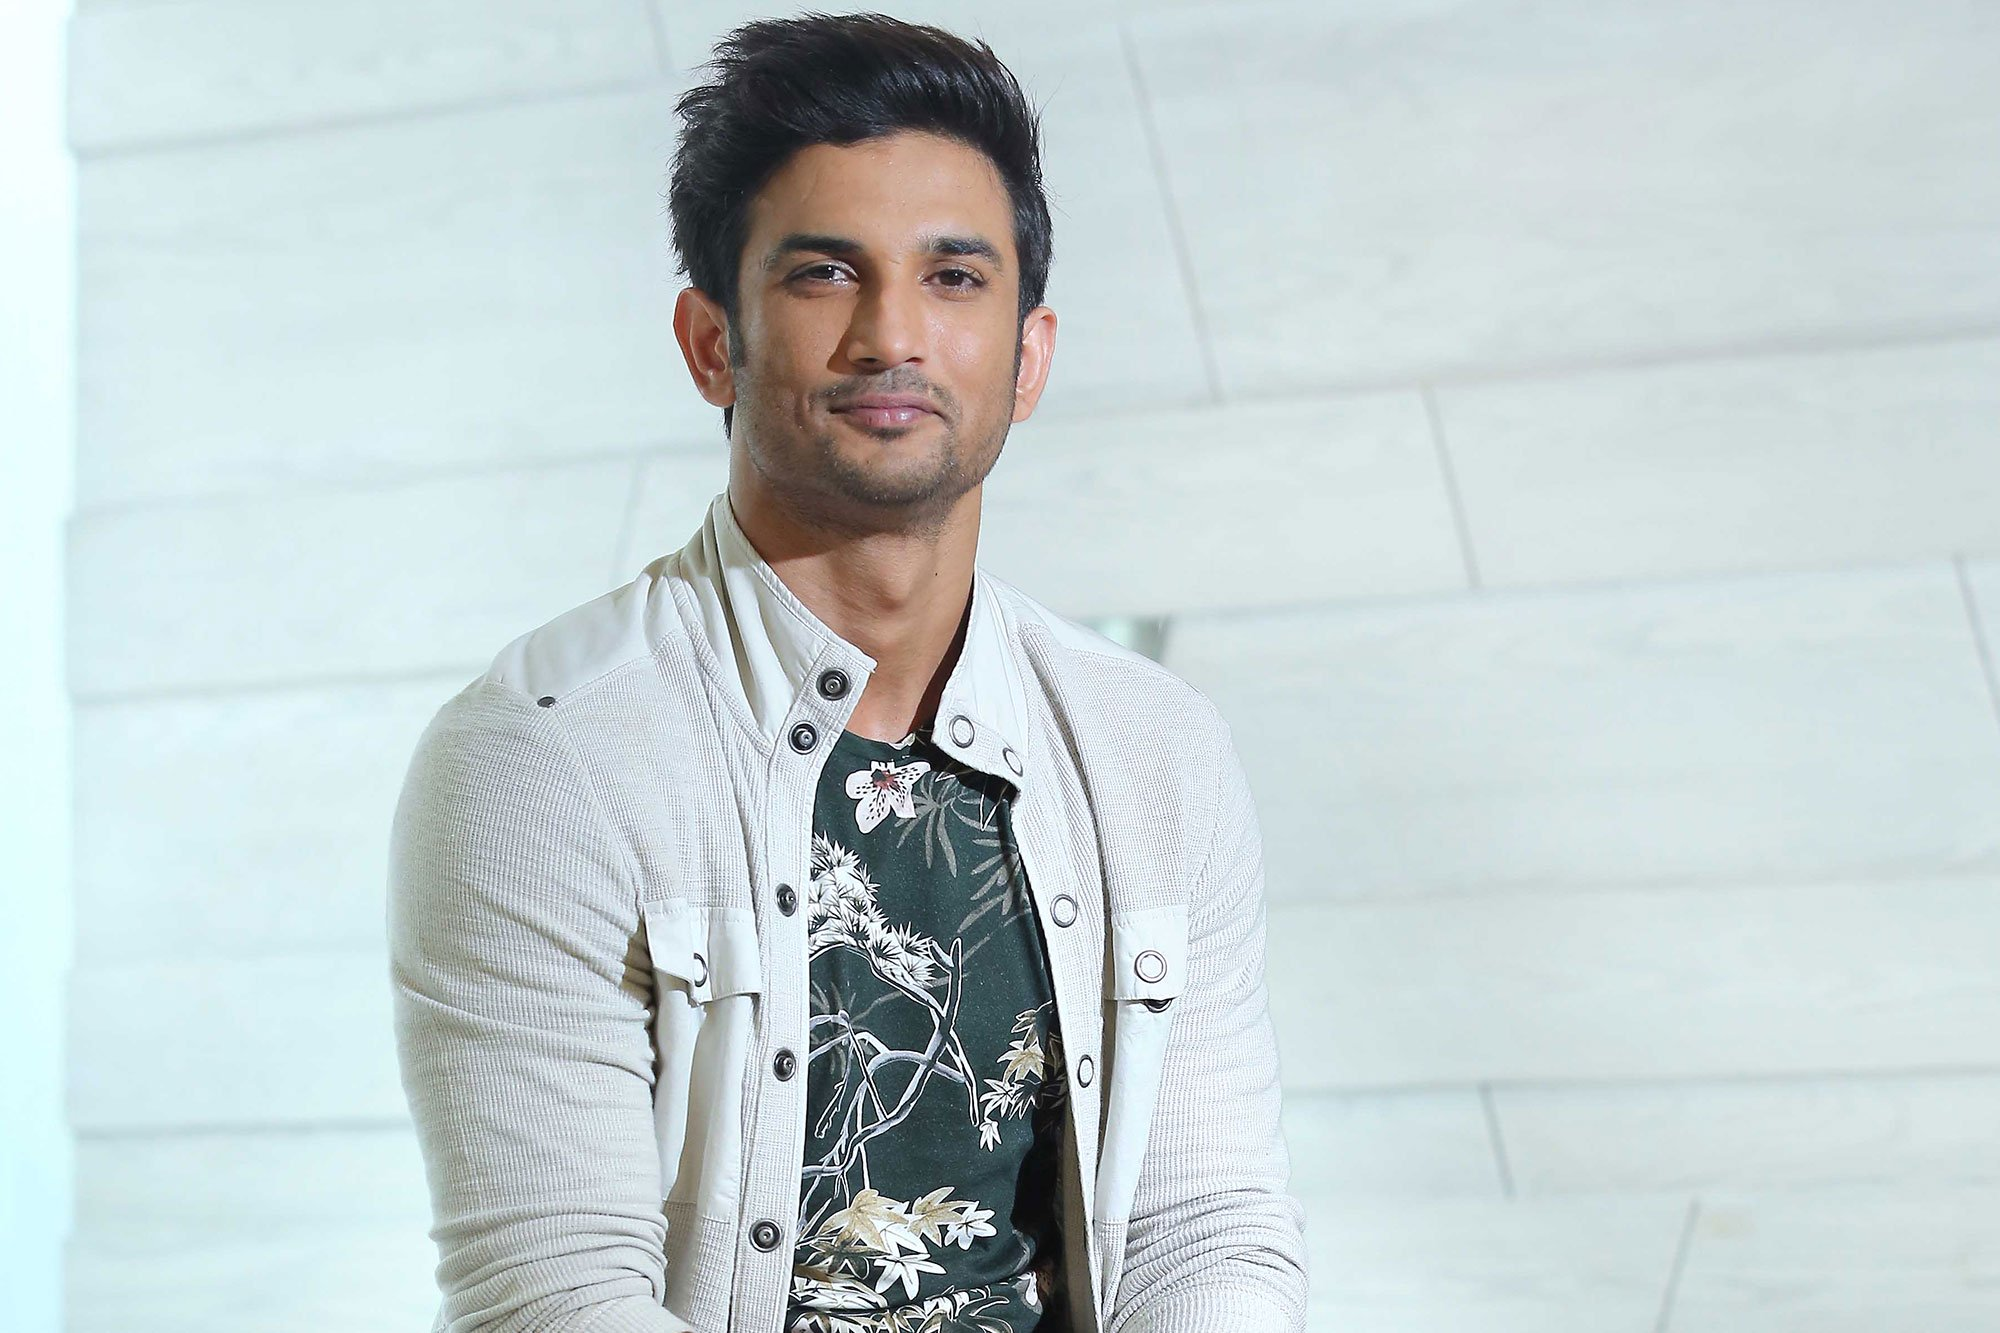 NEW DELHI, INDIA - SEPTEMBER 26: Bollywood actor Sushant Singh Rajput poses during an exclusive interview with HT City-Hindustan Times at Hotel Le Meridien, on September 26, 2016 in New Delhi, India. (Photo by Raajessh Kashyap/Hindustan Times)